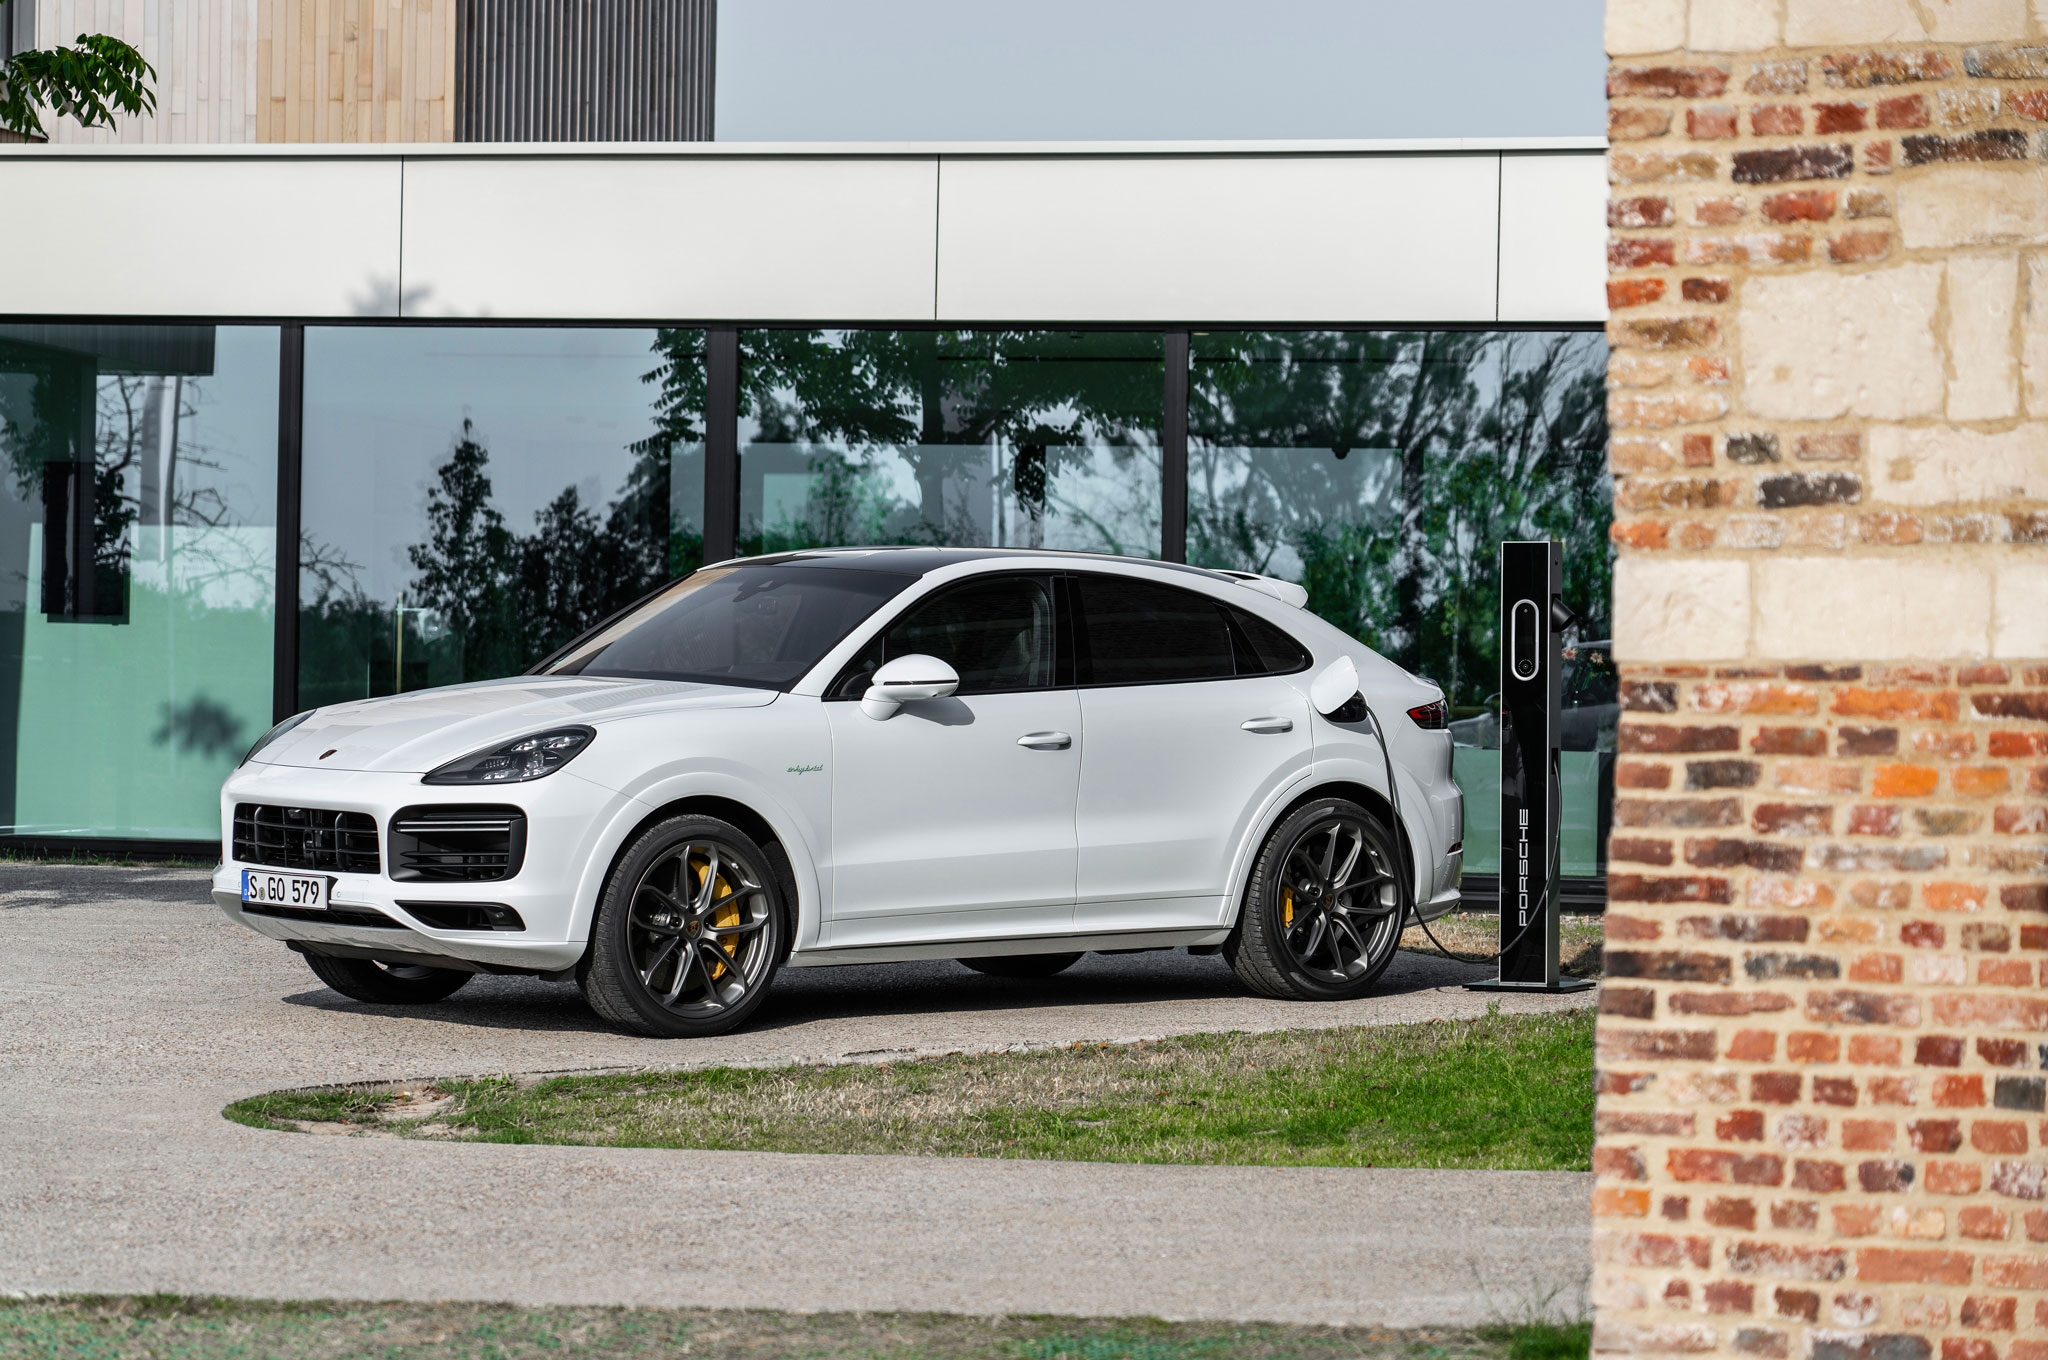 Most Powerful Porsche Suv Ever All New 2020 Cayenne Turbo S E Hybrid